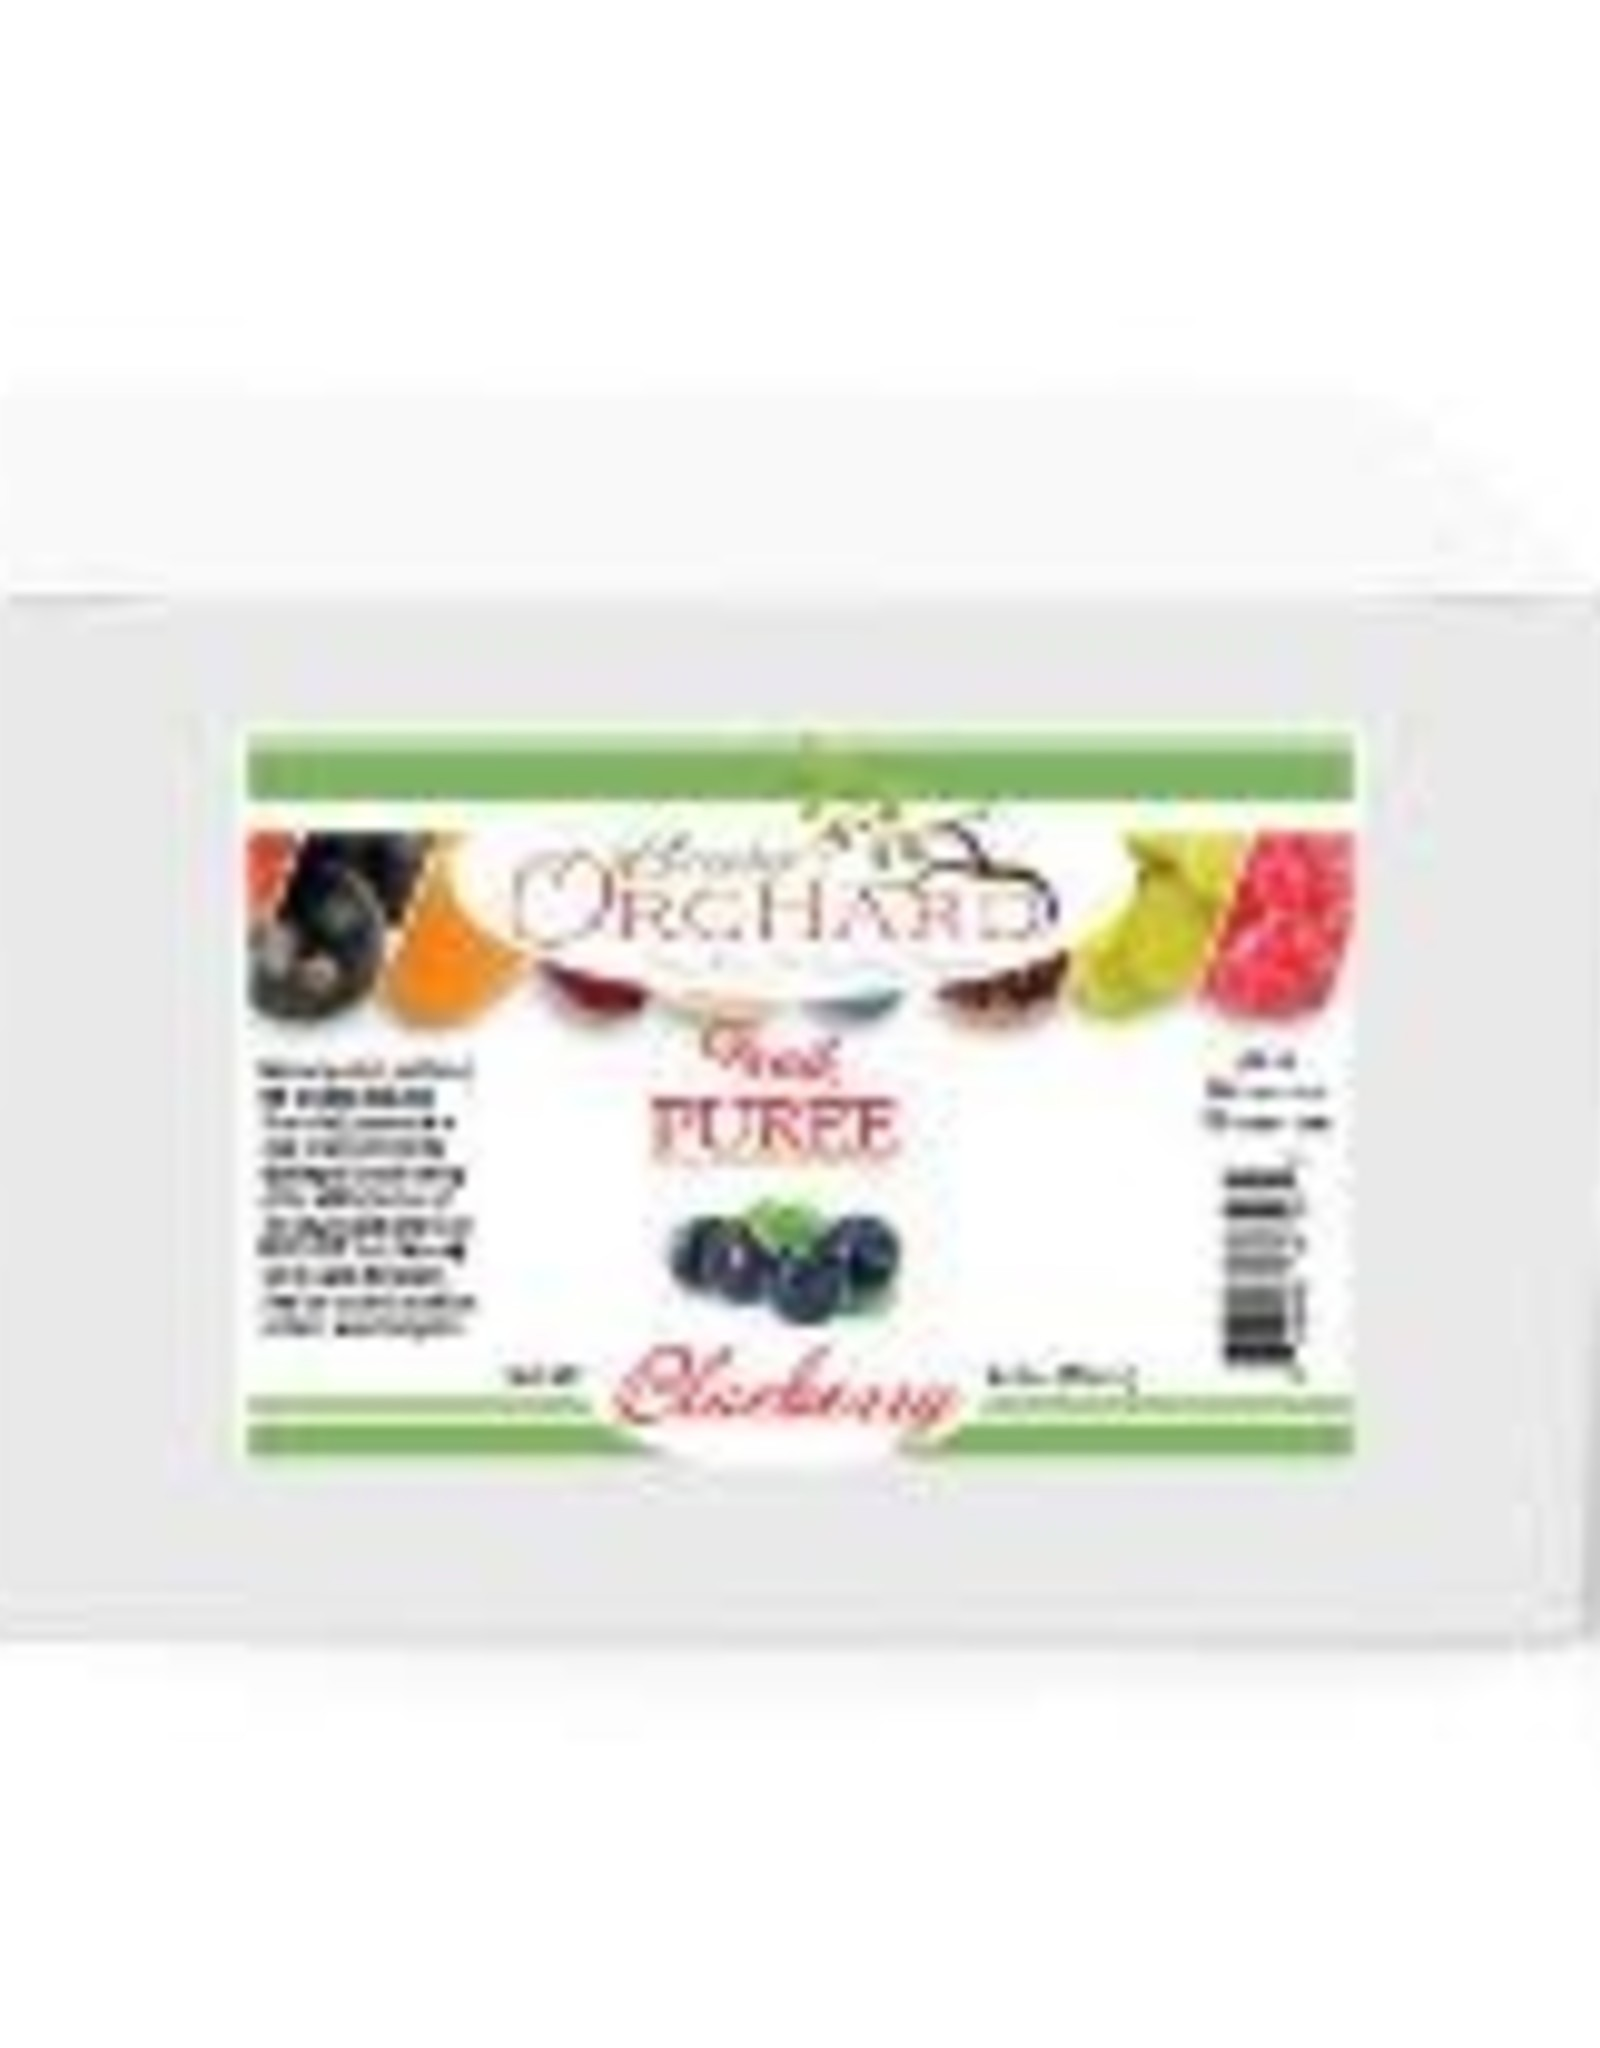 BREWER'S ORCHARD BREWER'S ORCHARD NATURAL BLUEBERRY FRUIT PUREE 4.4 LB